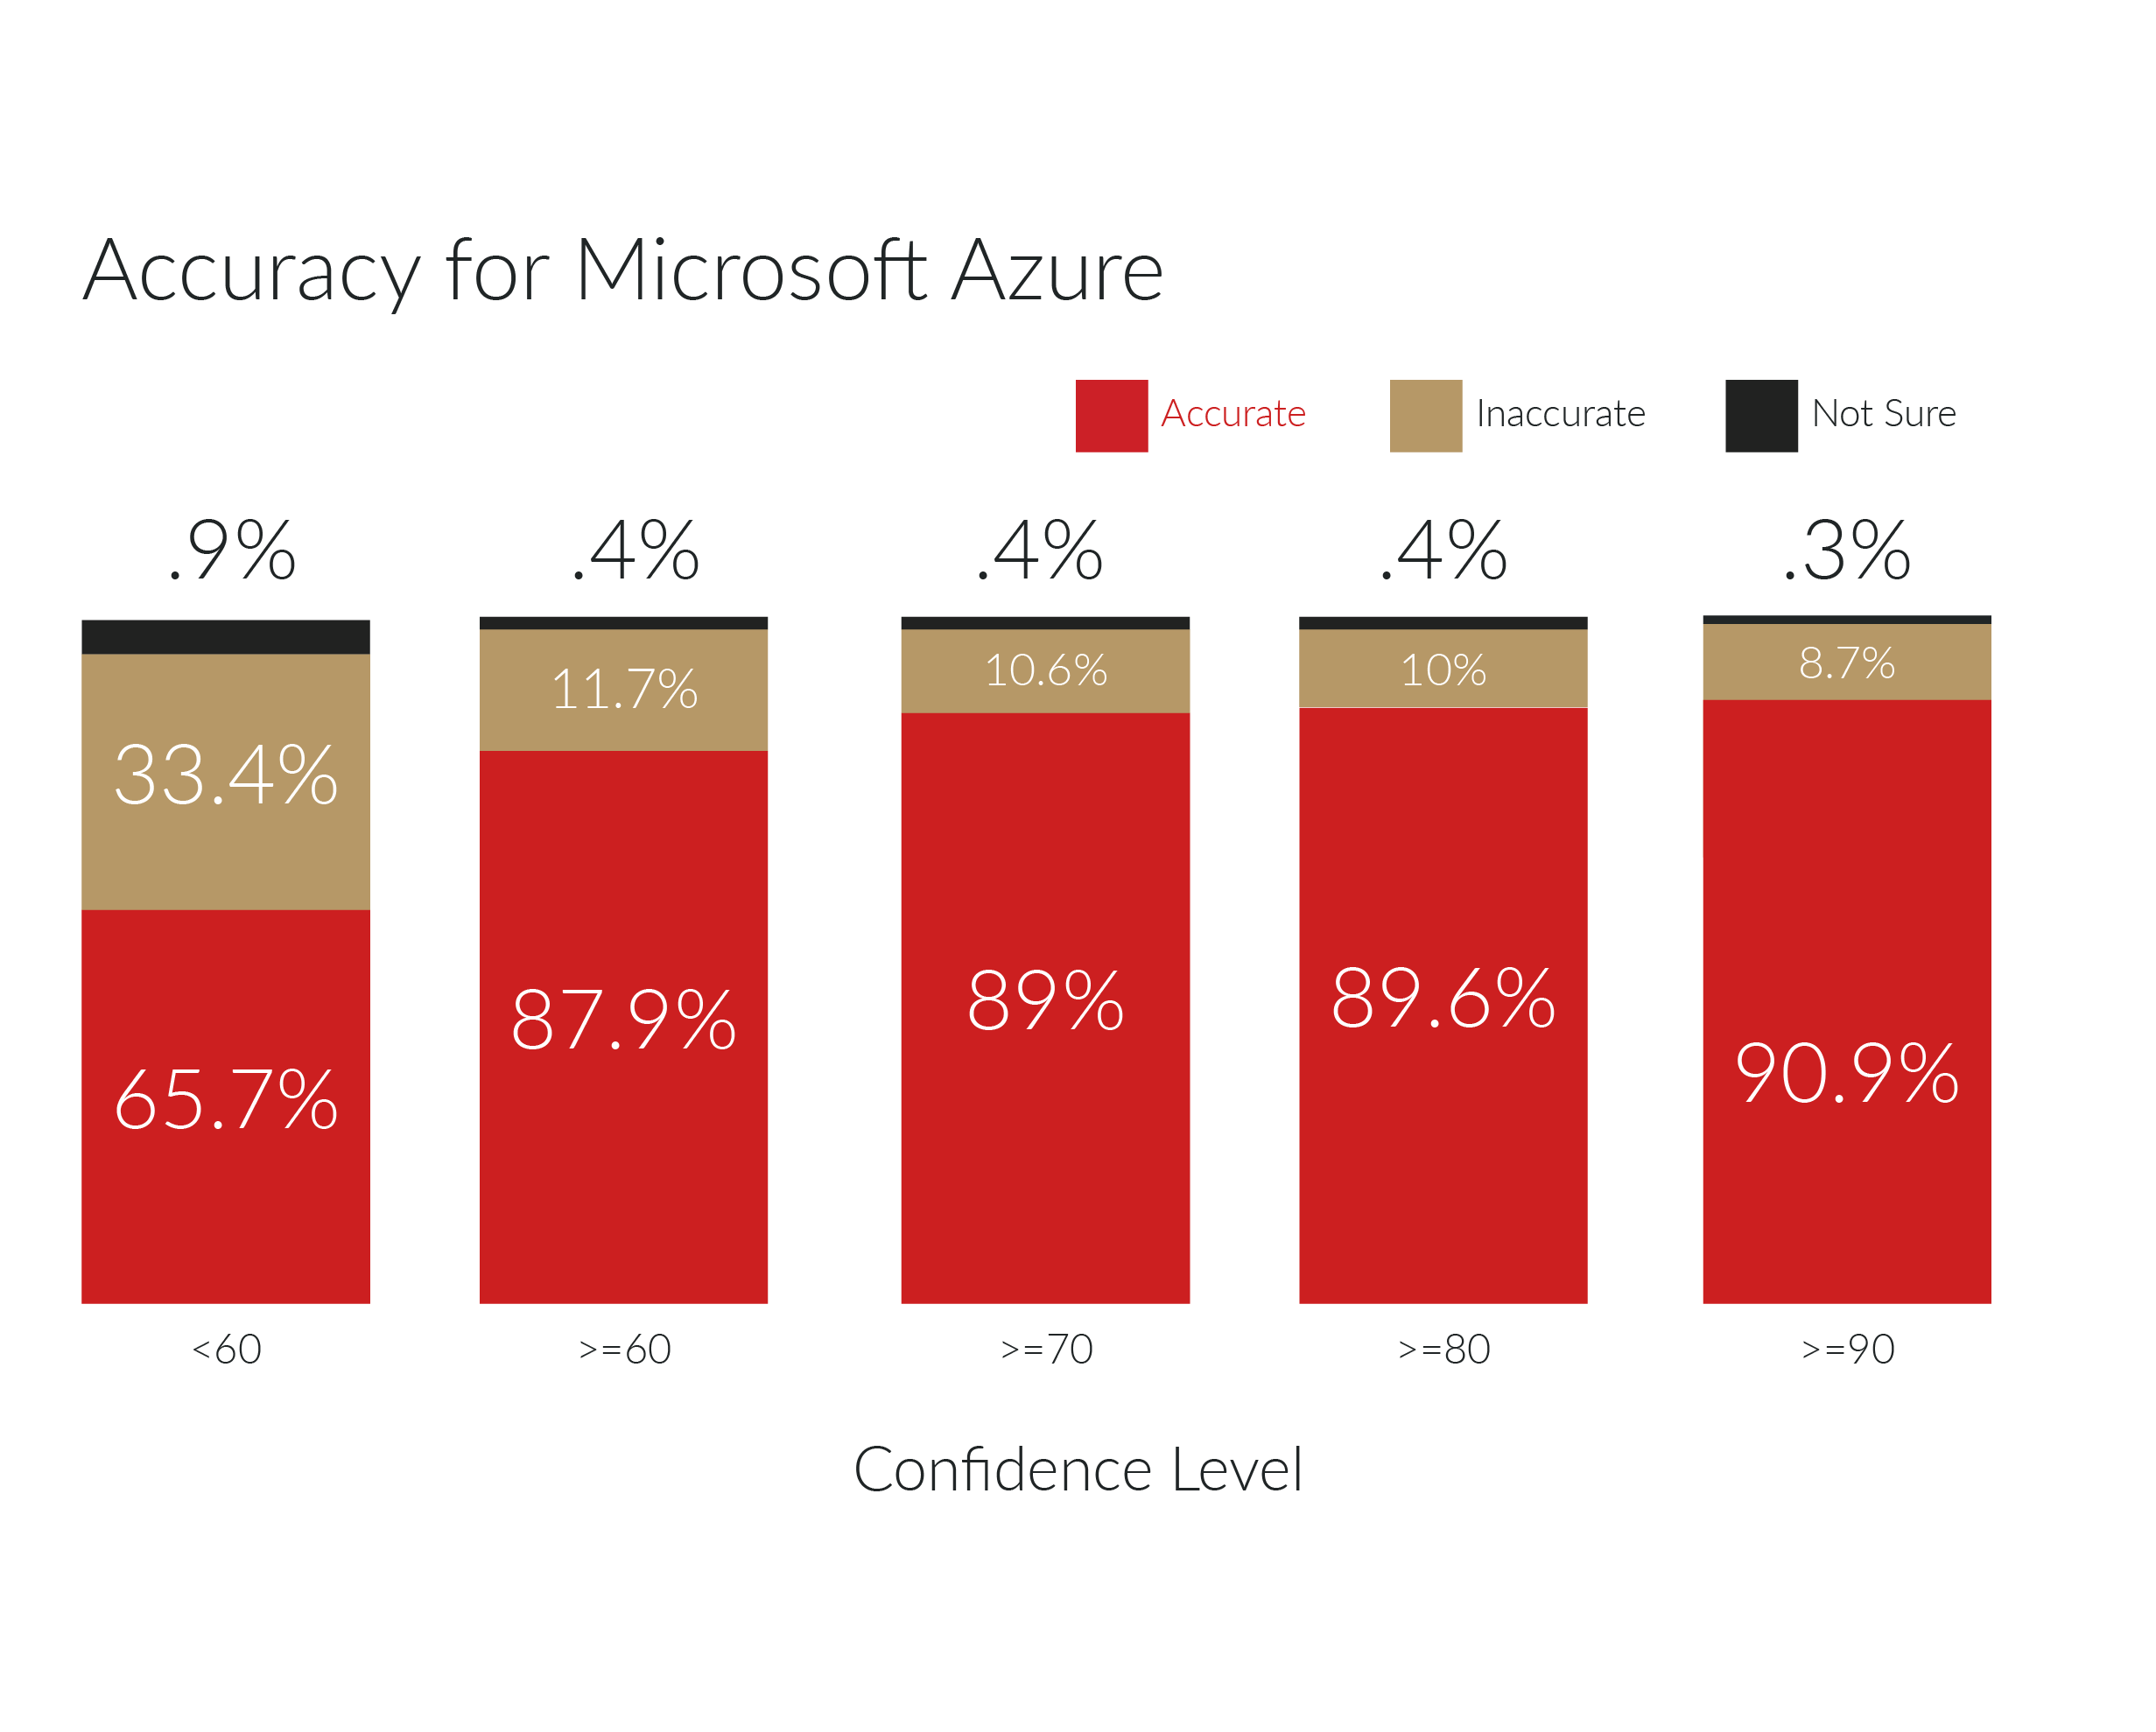 Microsoft Azure Computer Vision accuracy score of returned image tags in percentage by confidence level.